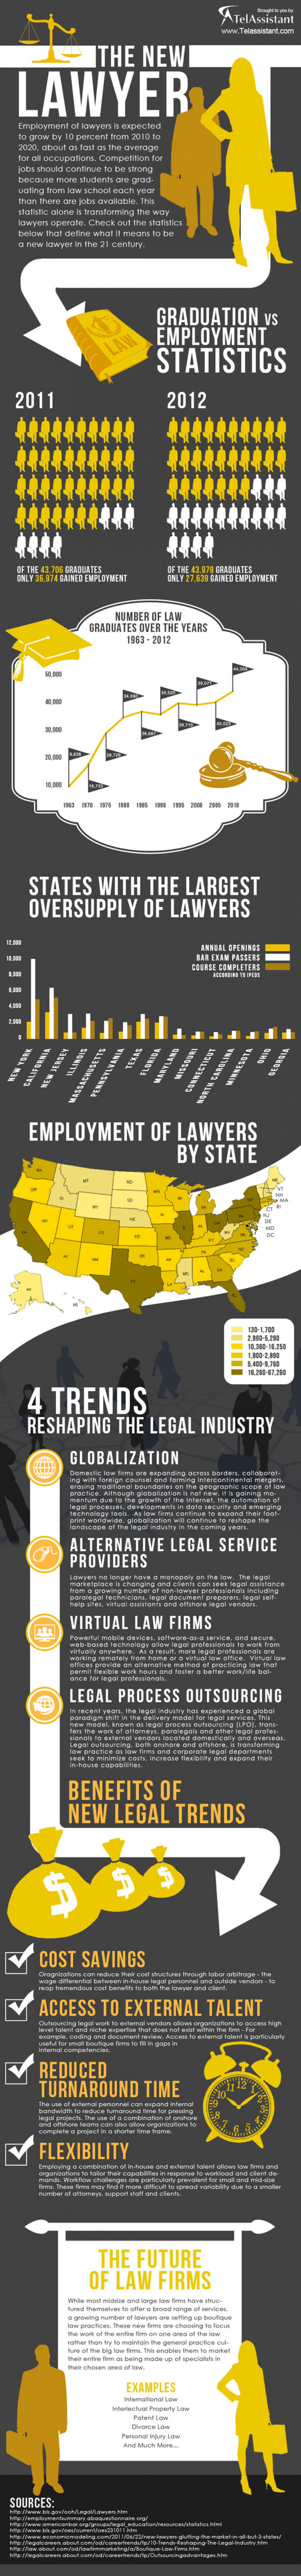 The New Lawyer; cool, custom infographic telling us it's only getting more competitive and how to deal with it.  Infographic